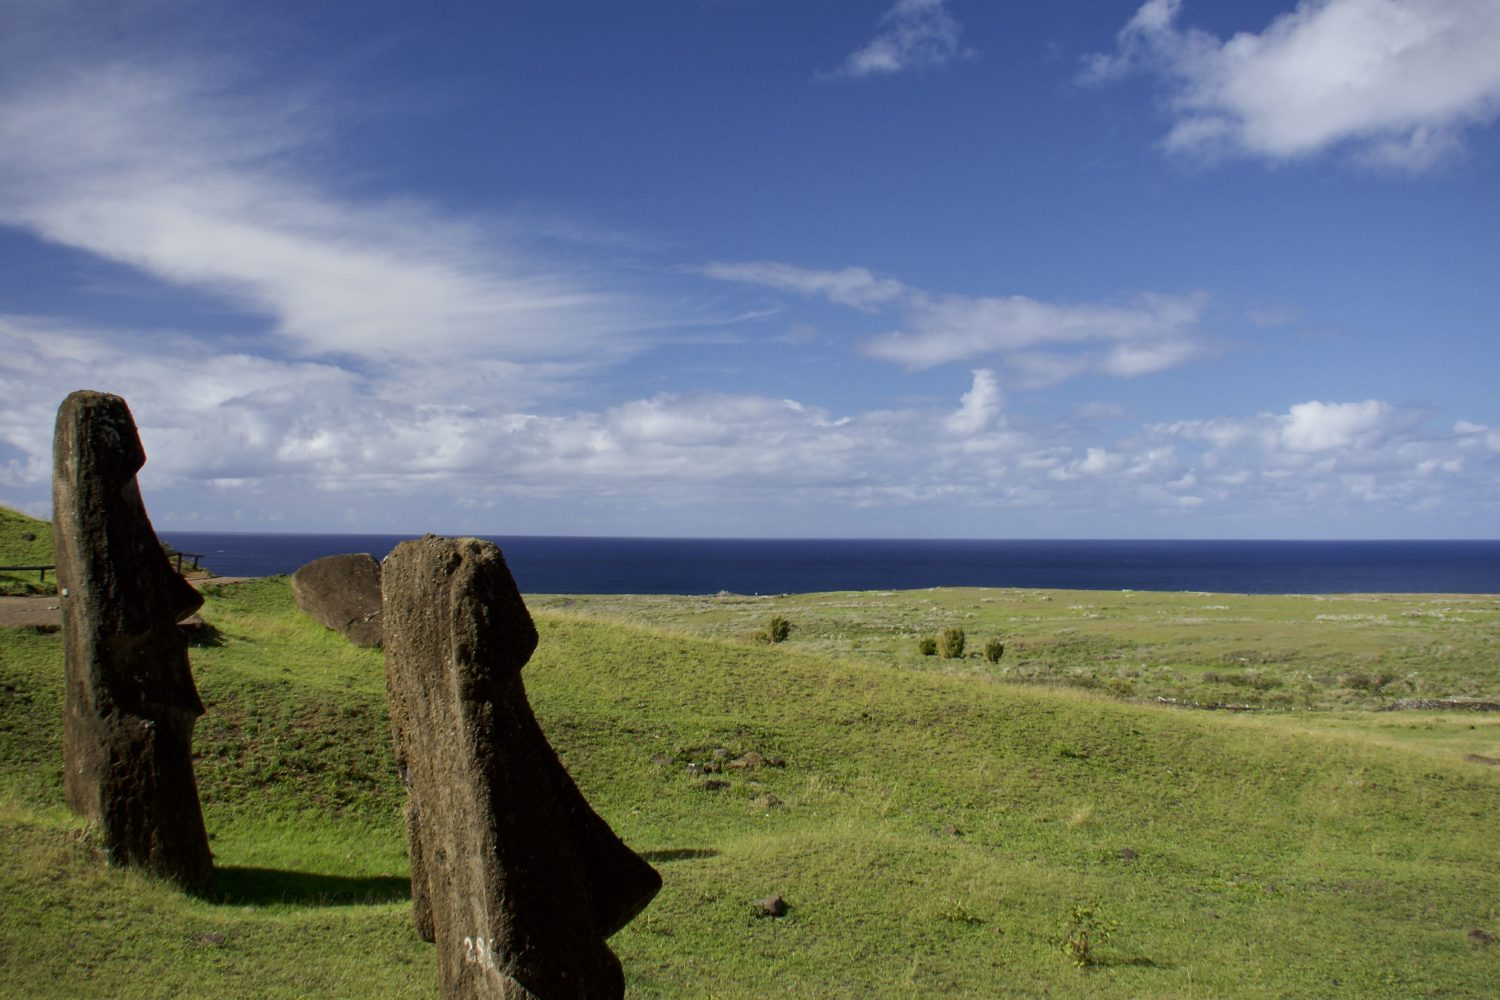 Photograph by Clement Guillon, Easter Island